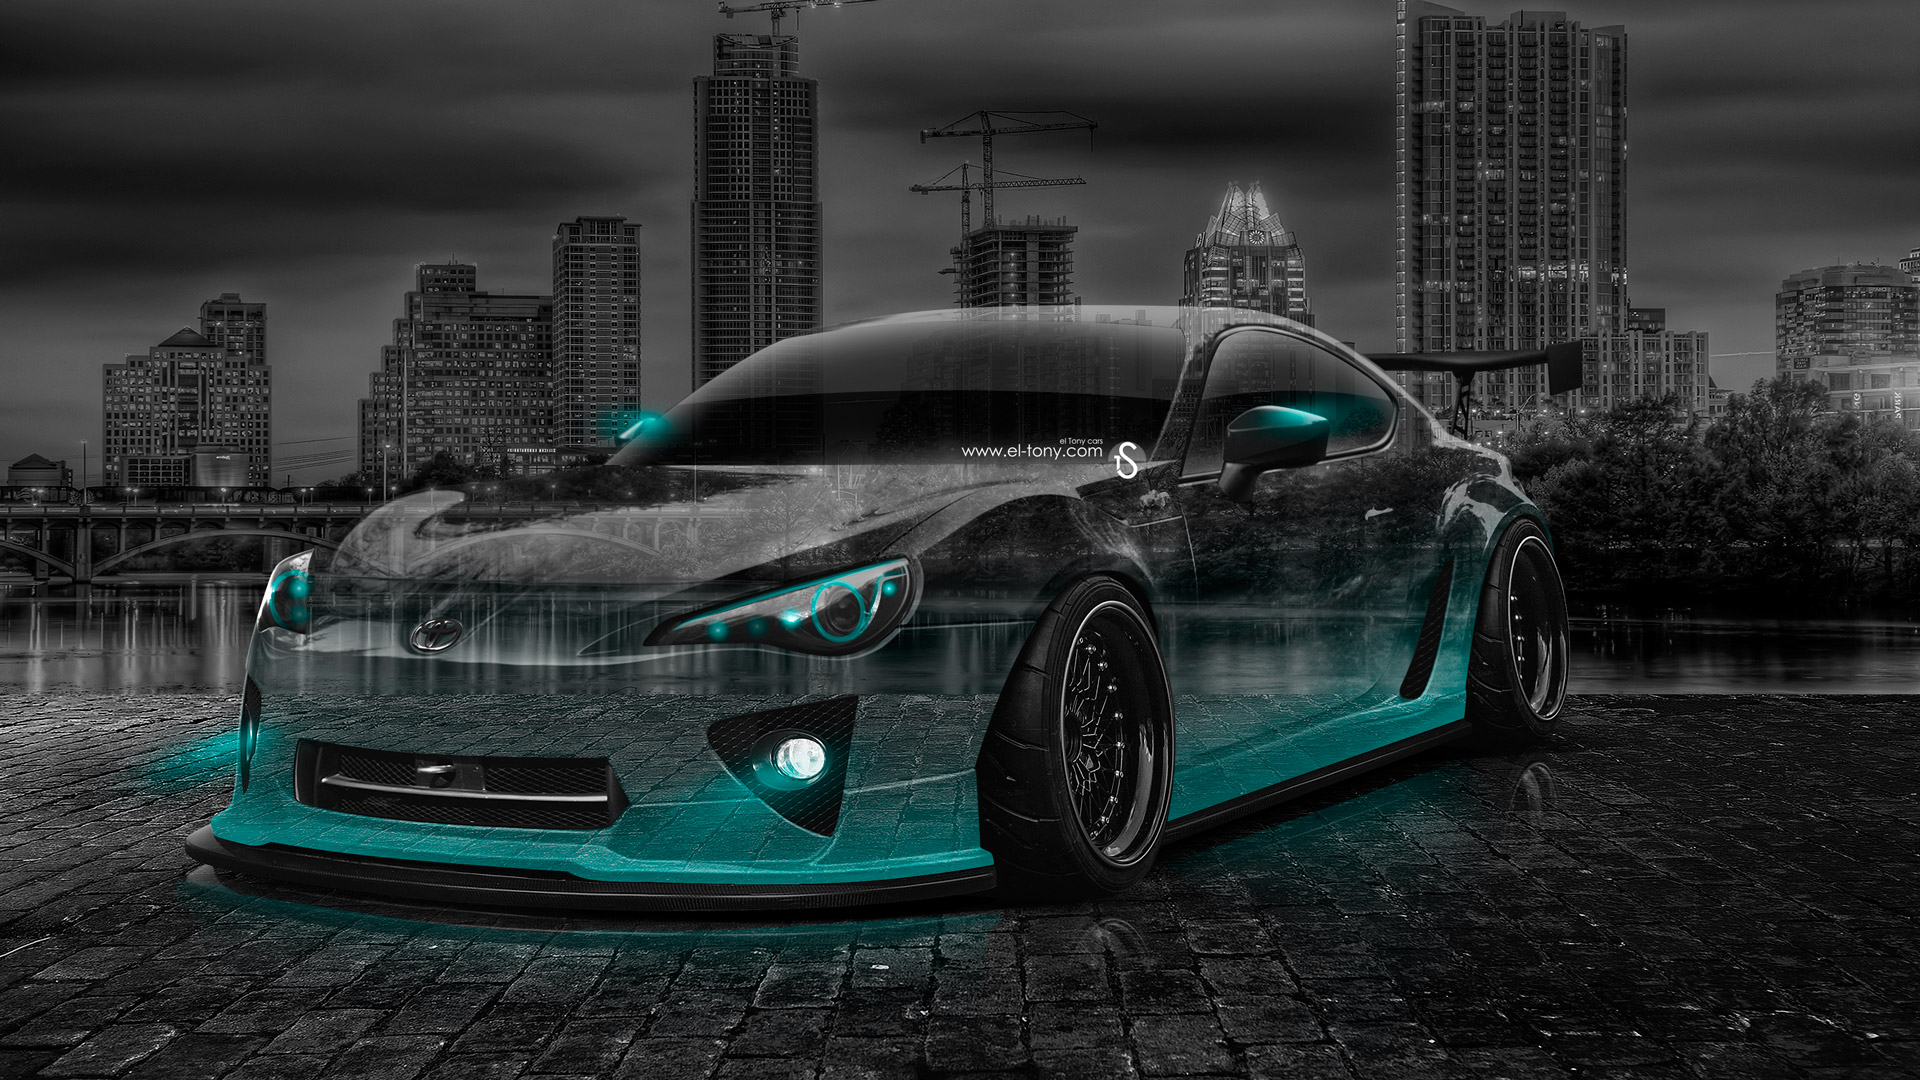 Toyota GT86 JDM Crystal City Car 2014 Azure